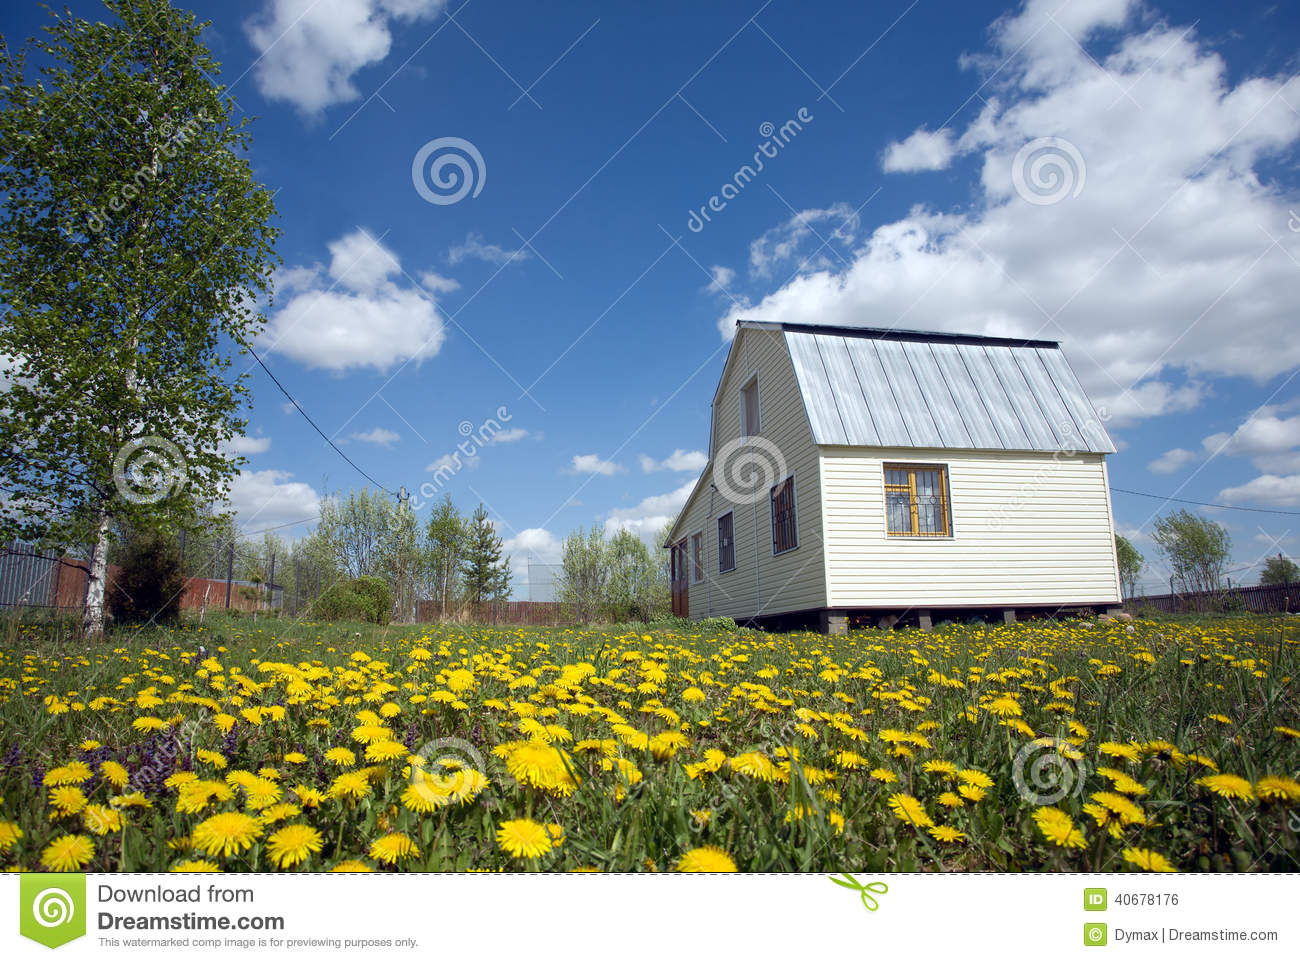 Suburban House Covered With Siding On Lawn With Yellow Dandelions Stock Photo Image Of Summer